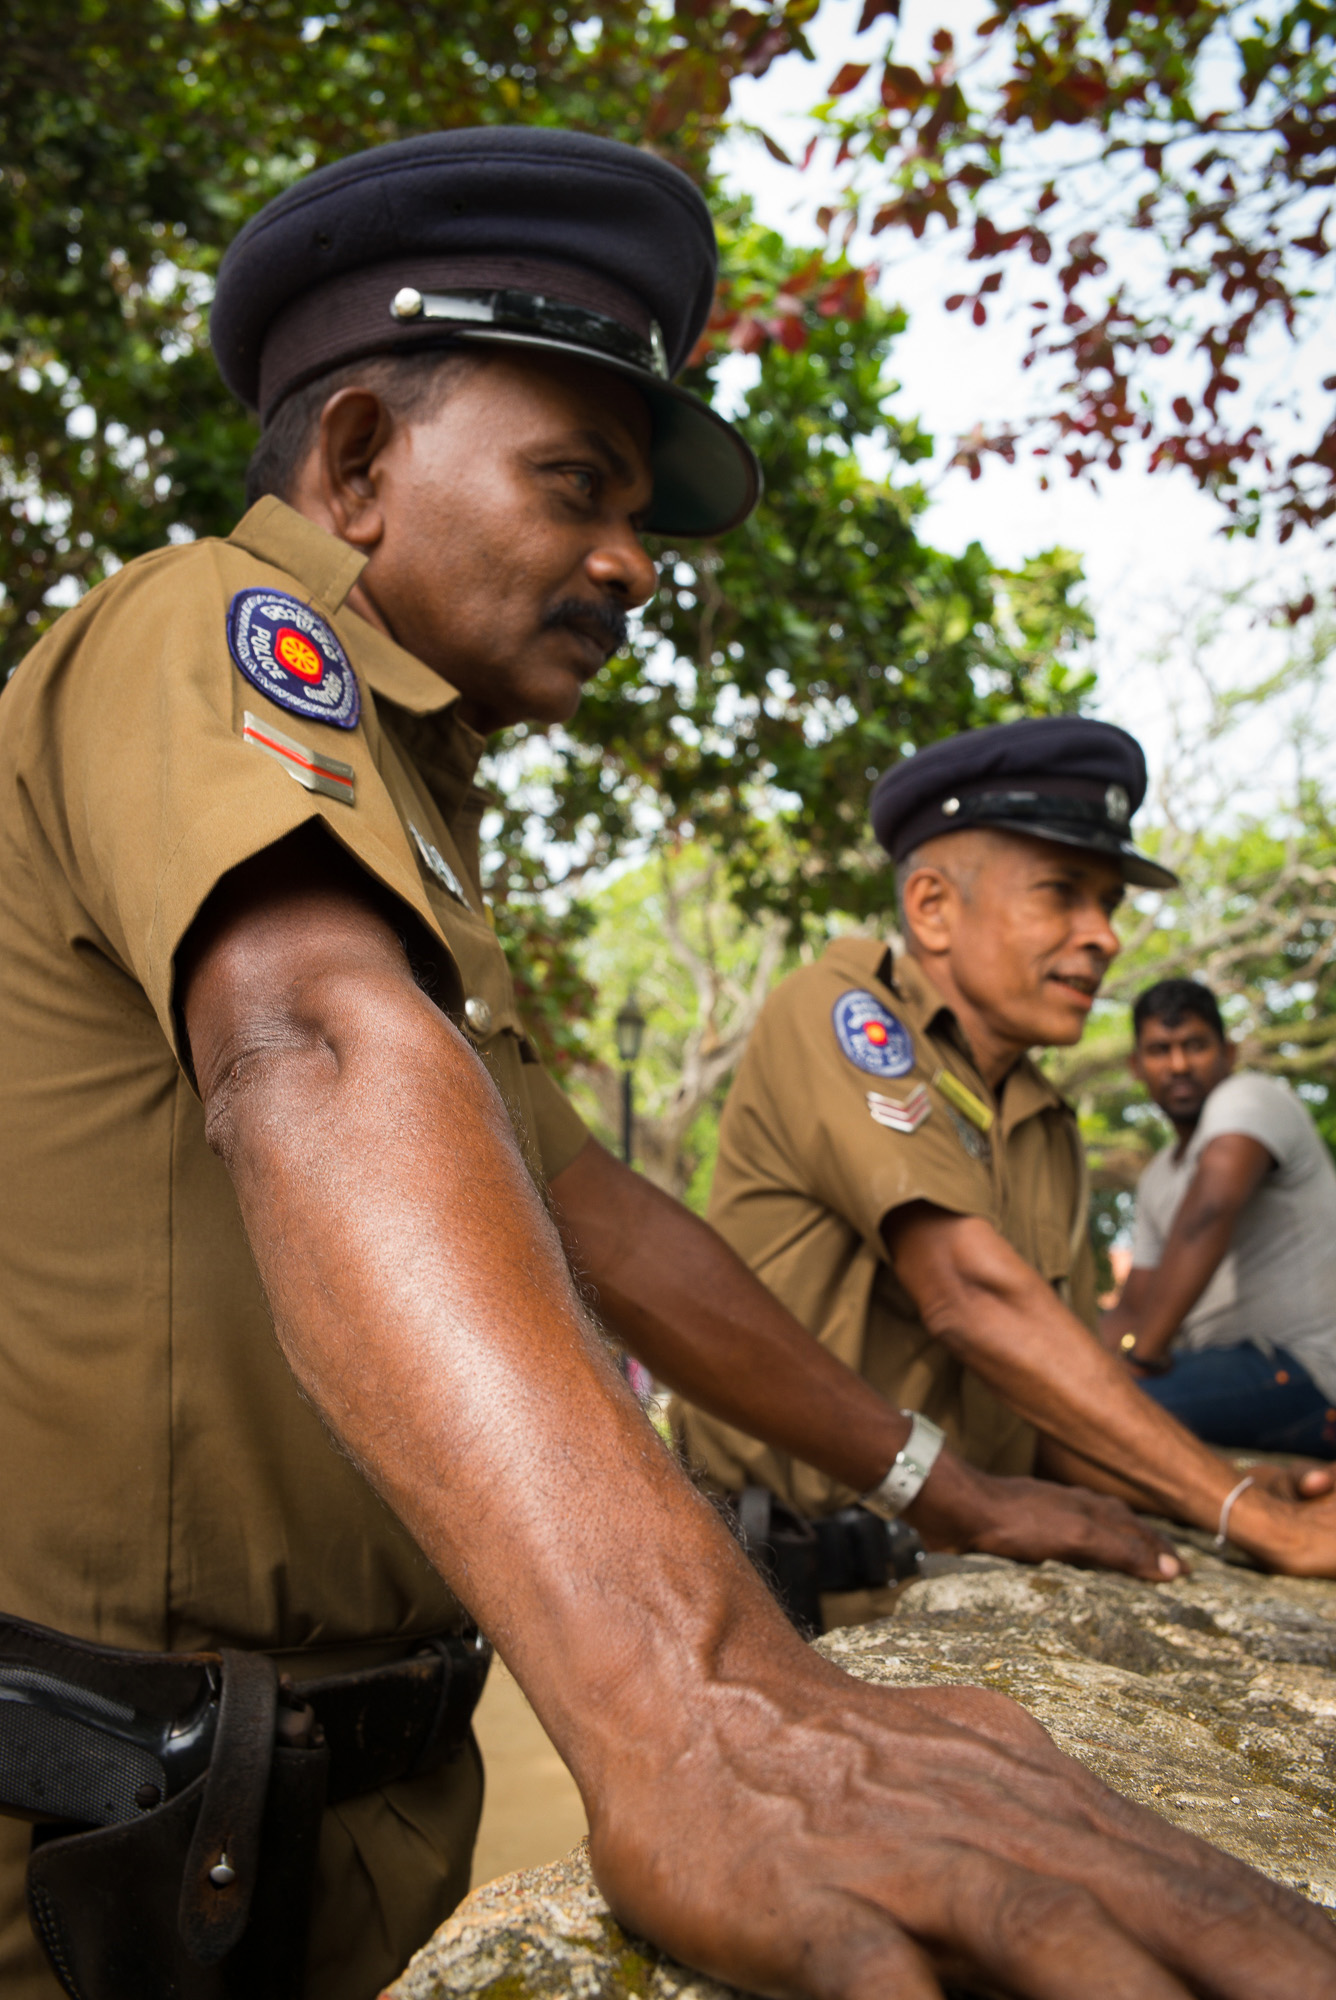 Police officers, Galle, Southern Province